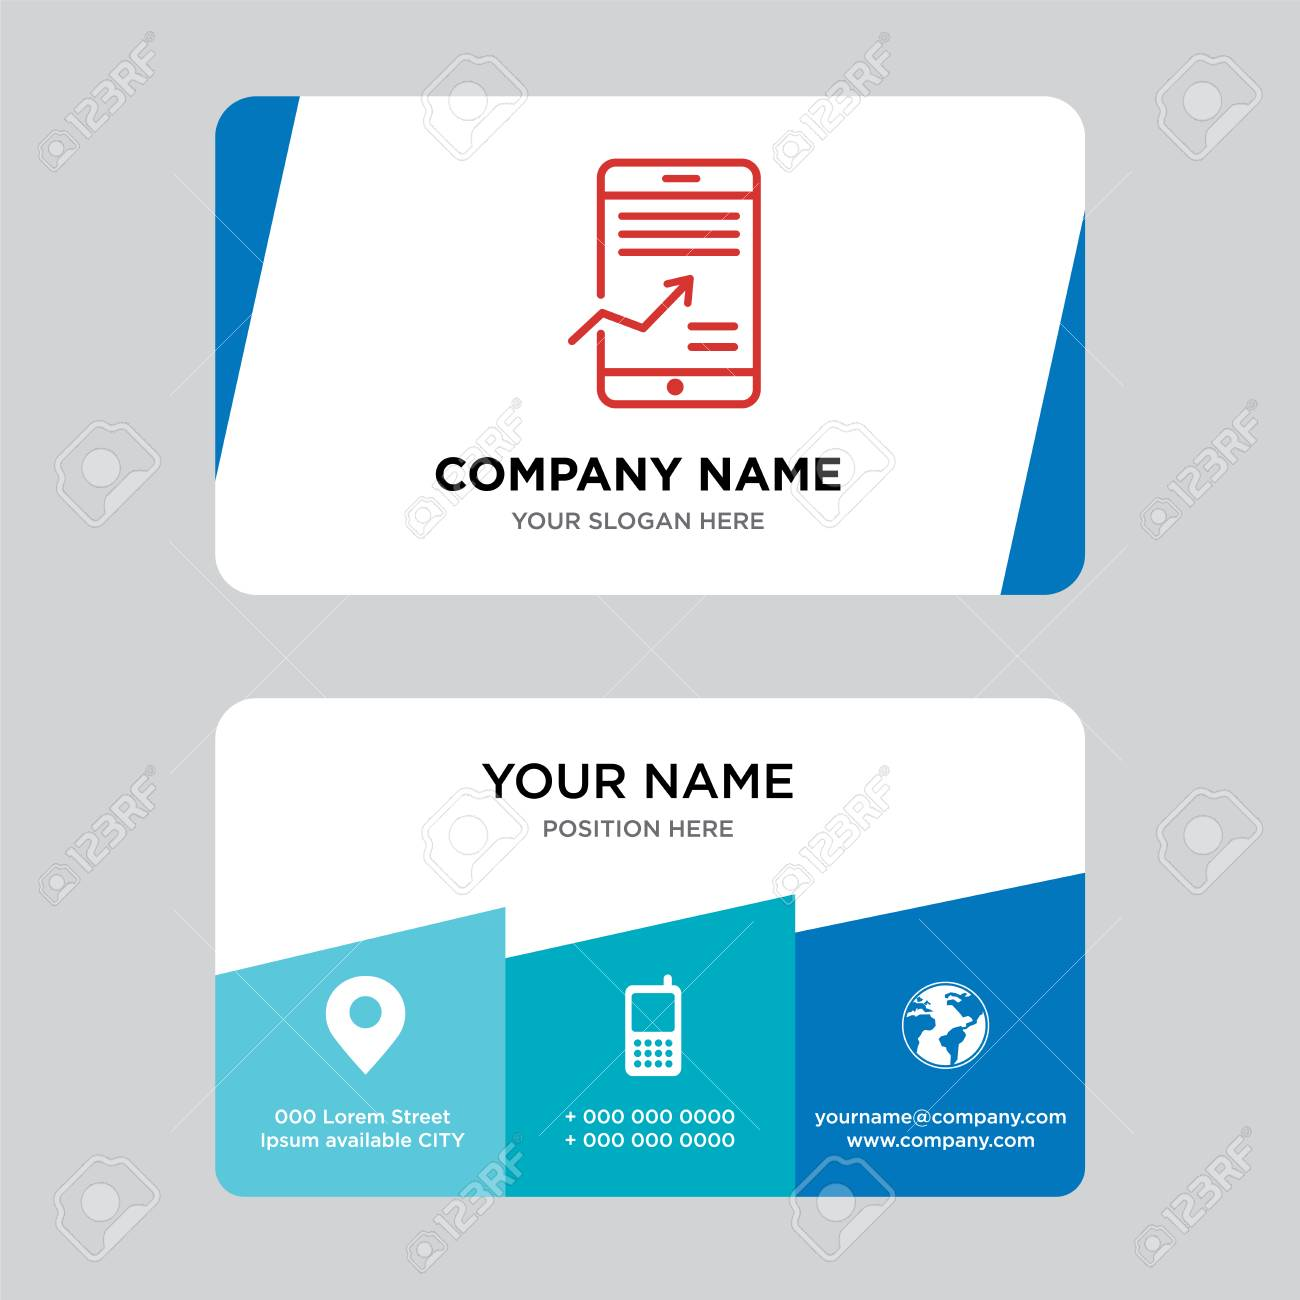 Mobile Stock Data Analysis Business Card Design Template Visiting